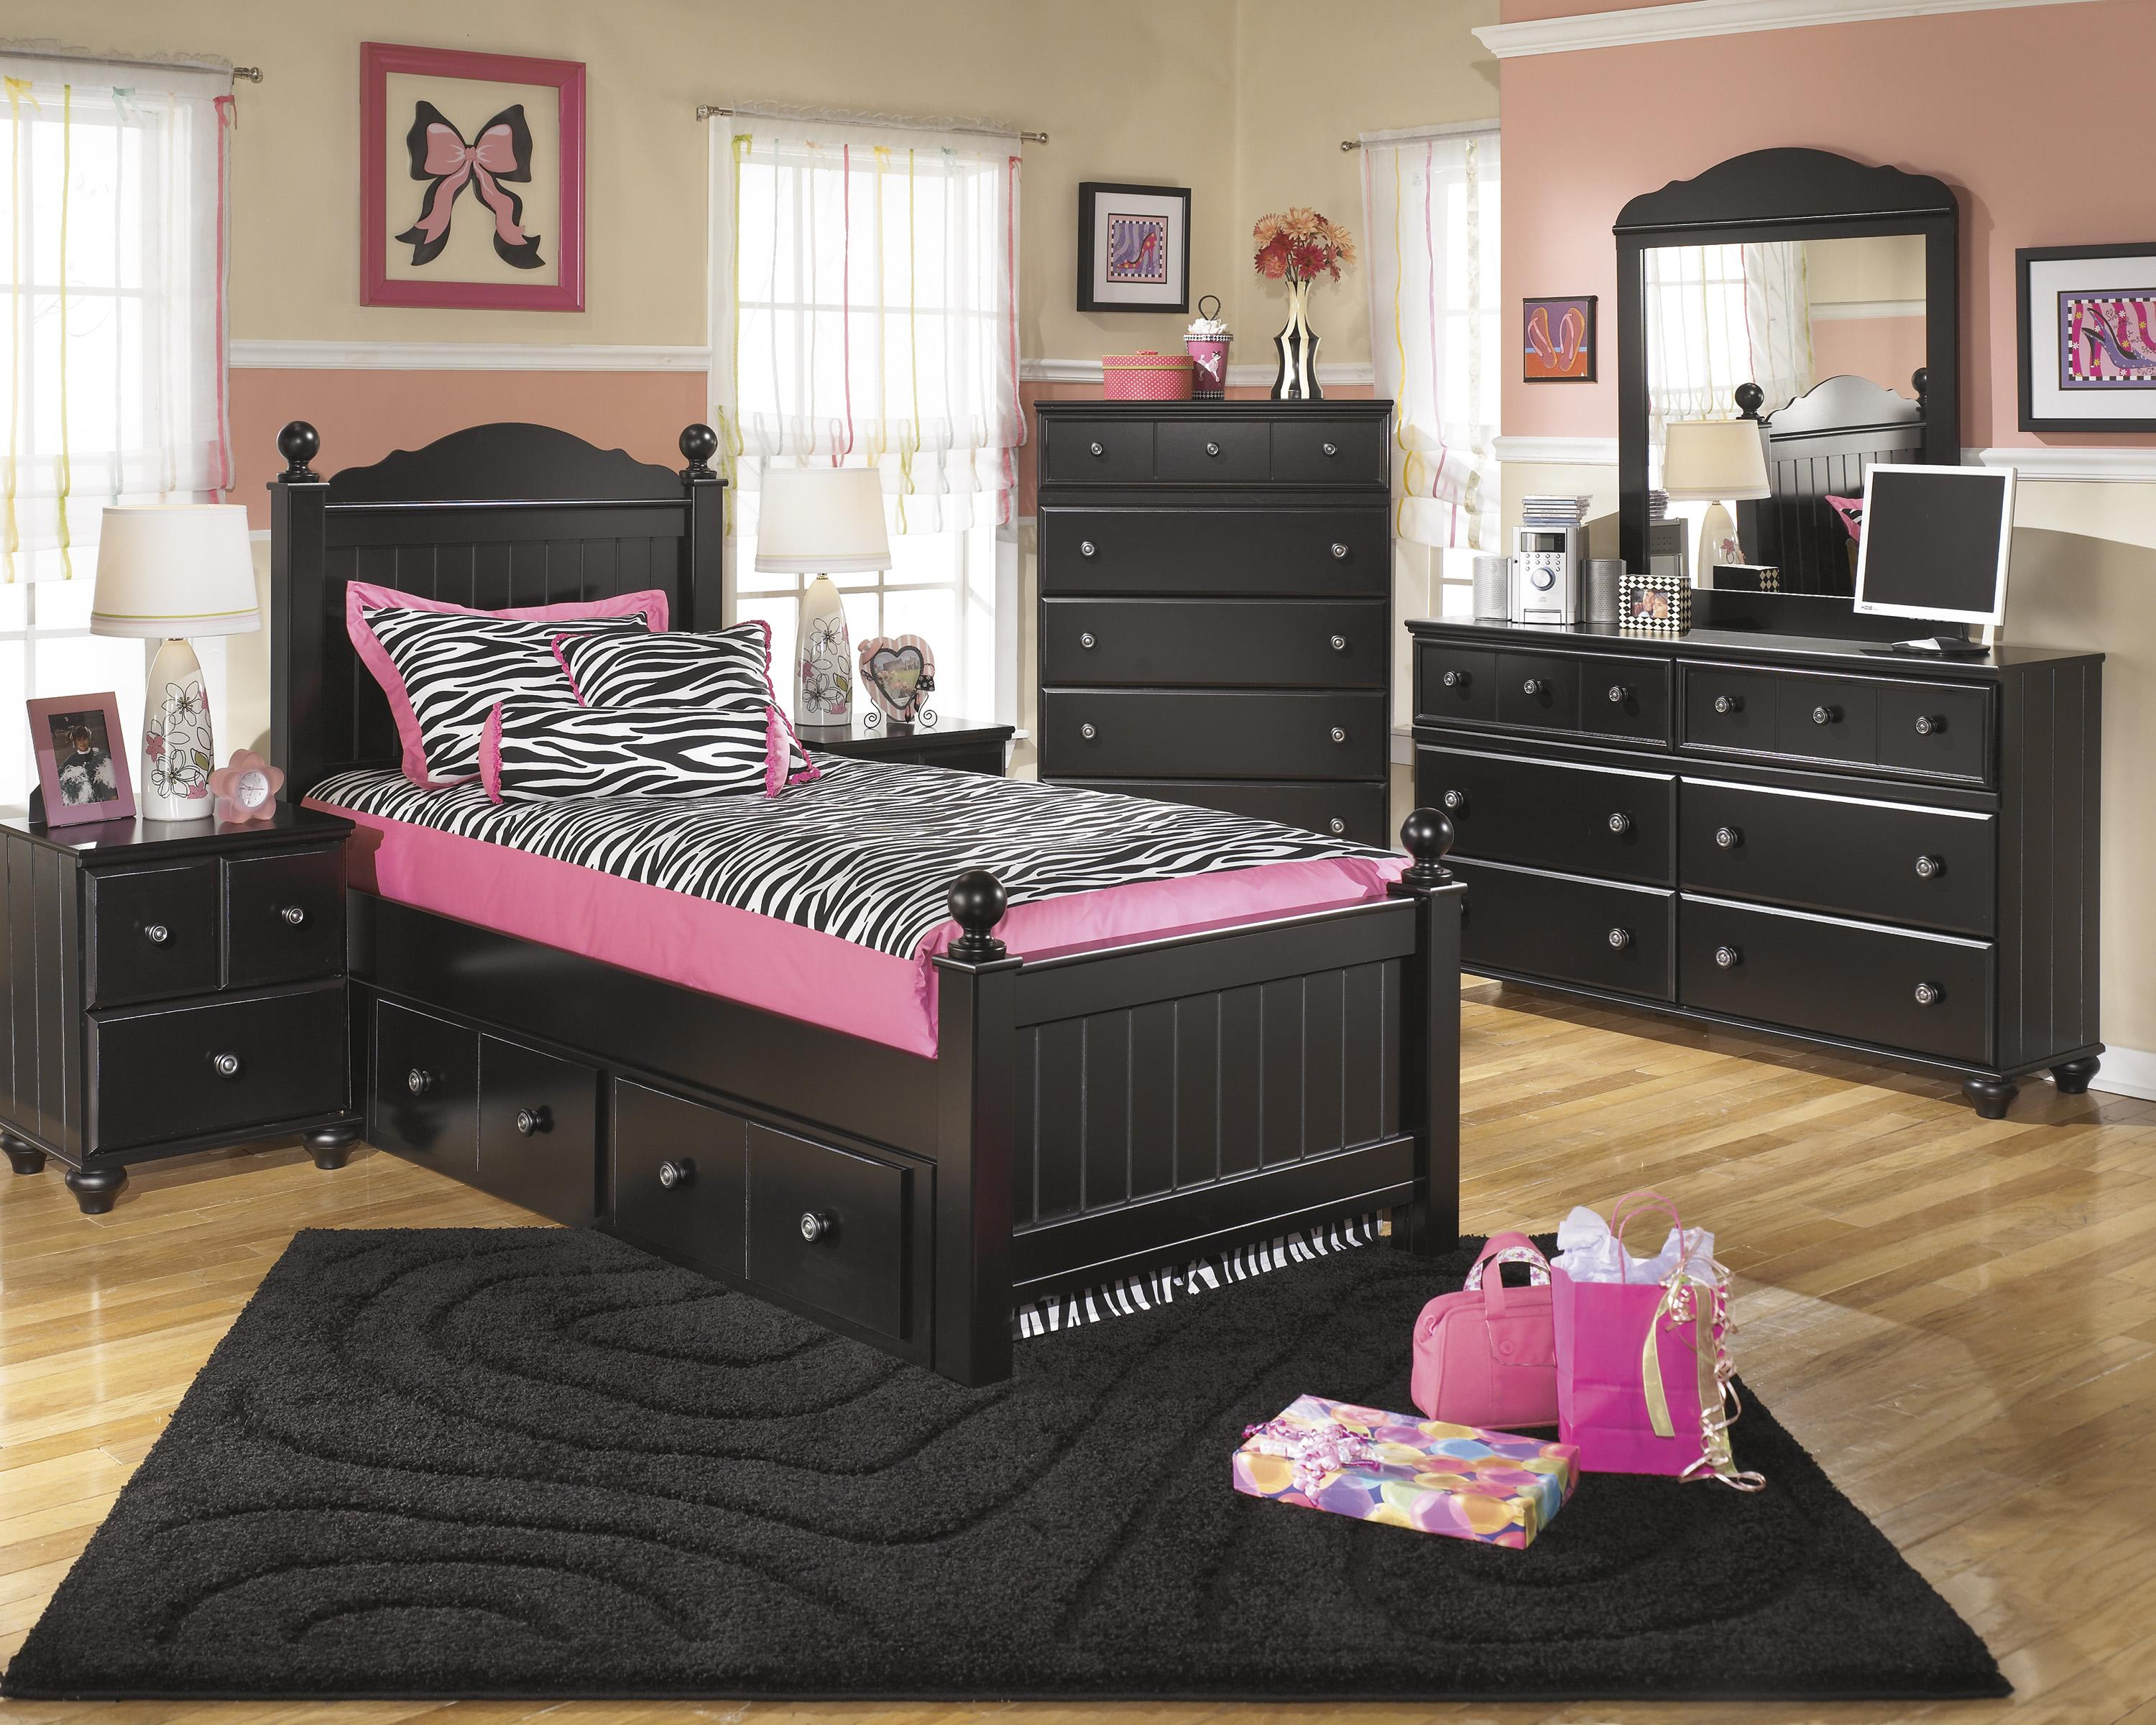 Signature Design by Ashley Jaidyn Twin Bedroom Group - Item Number: B150 T Bedroom Group 3